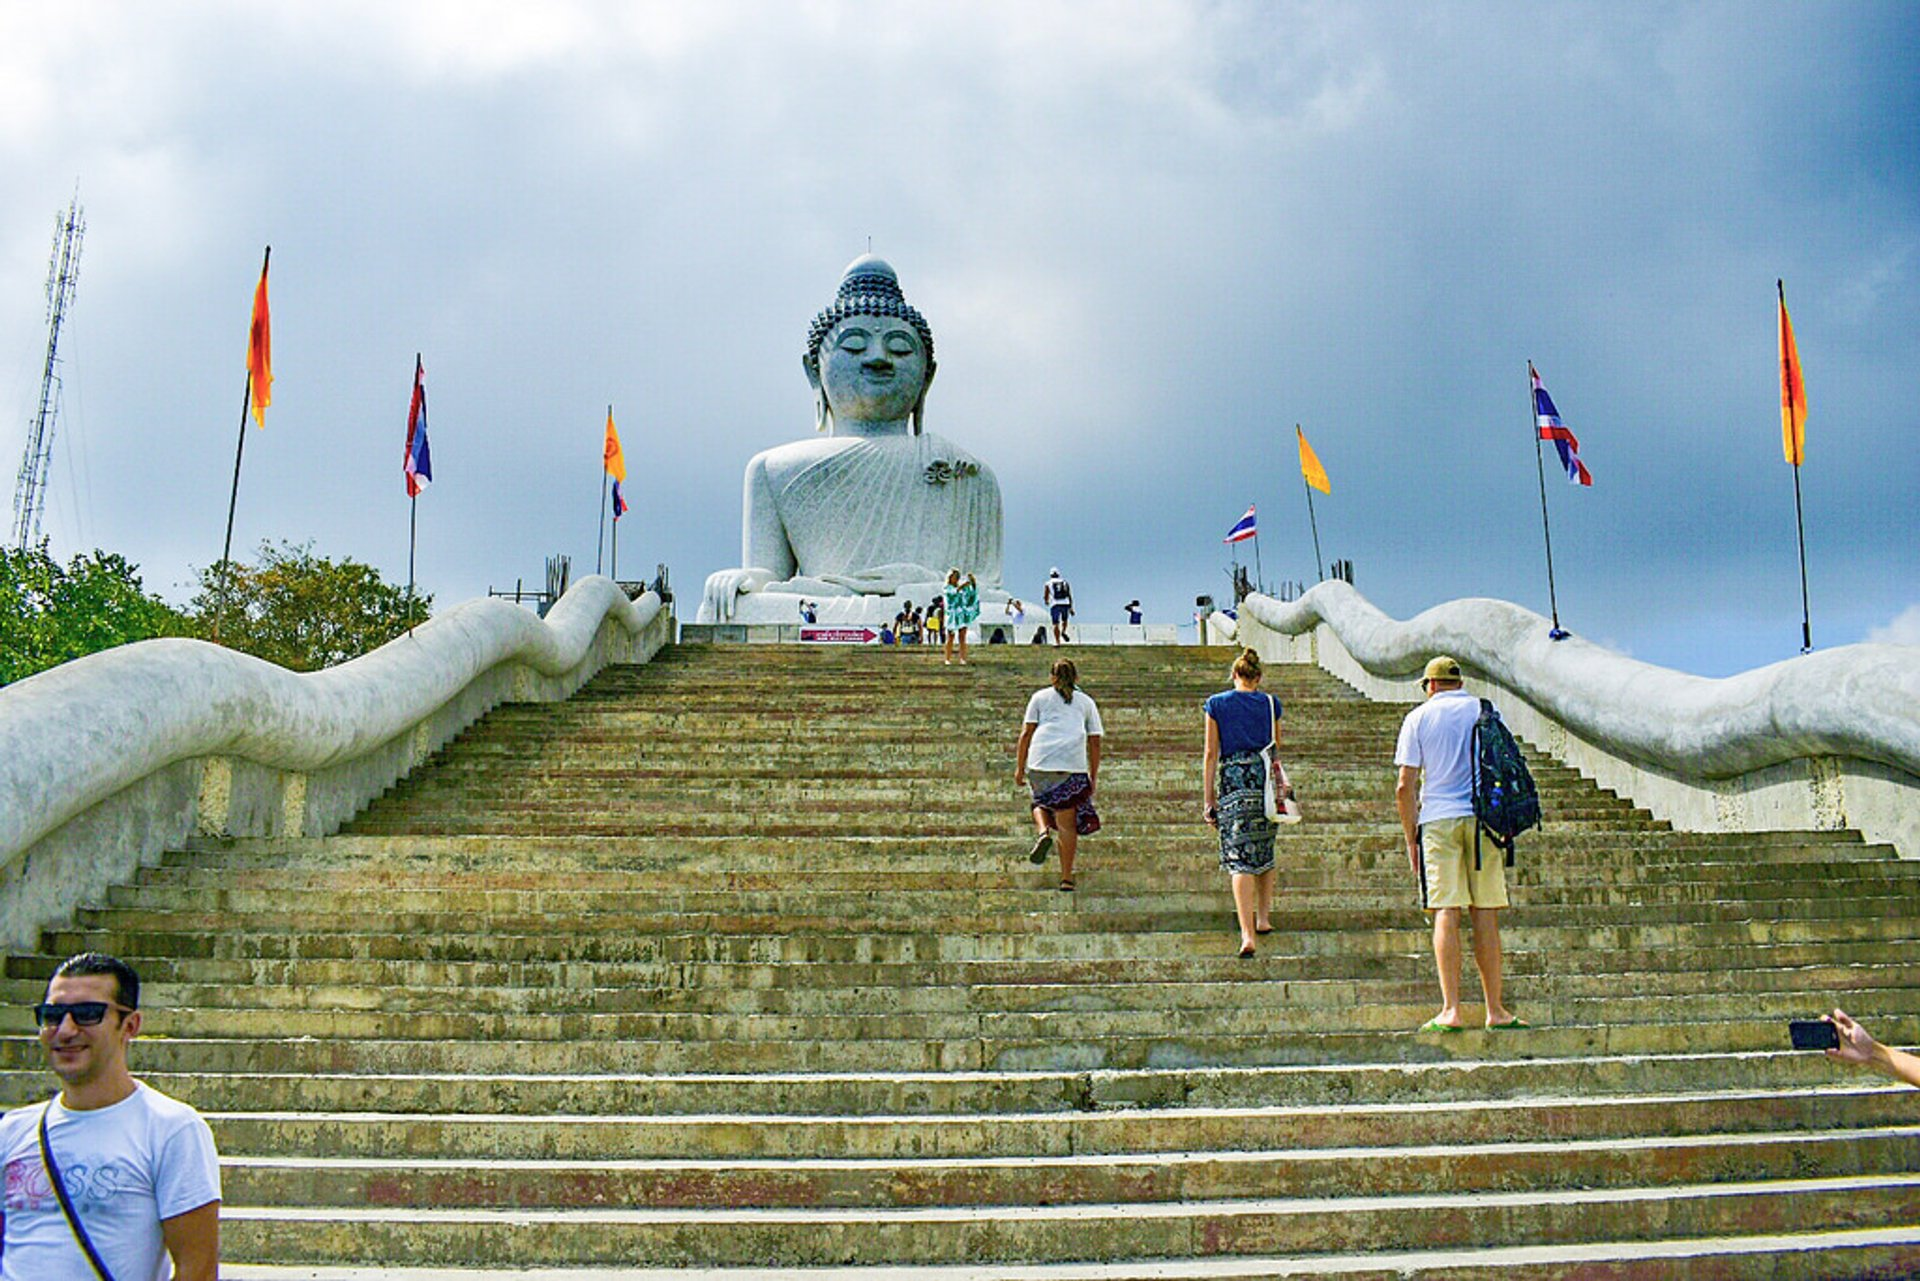 Best time to see Big Buddha in Phuket 2019